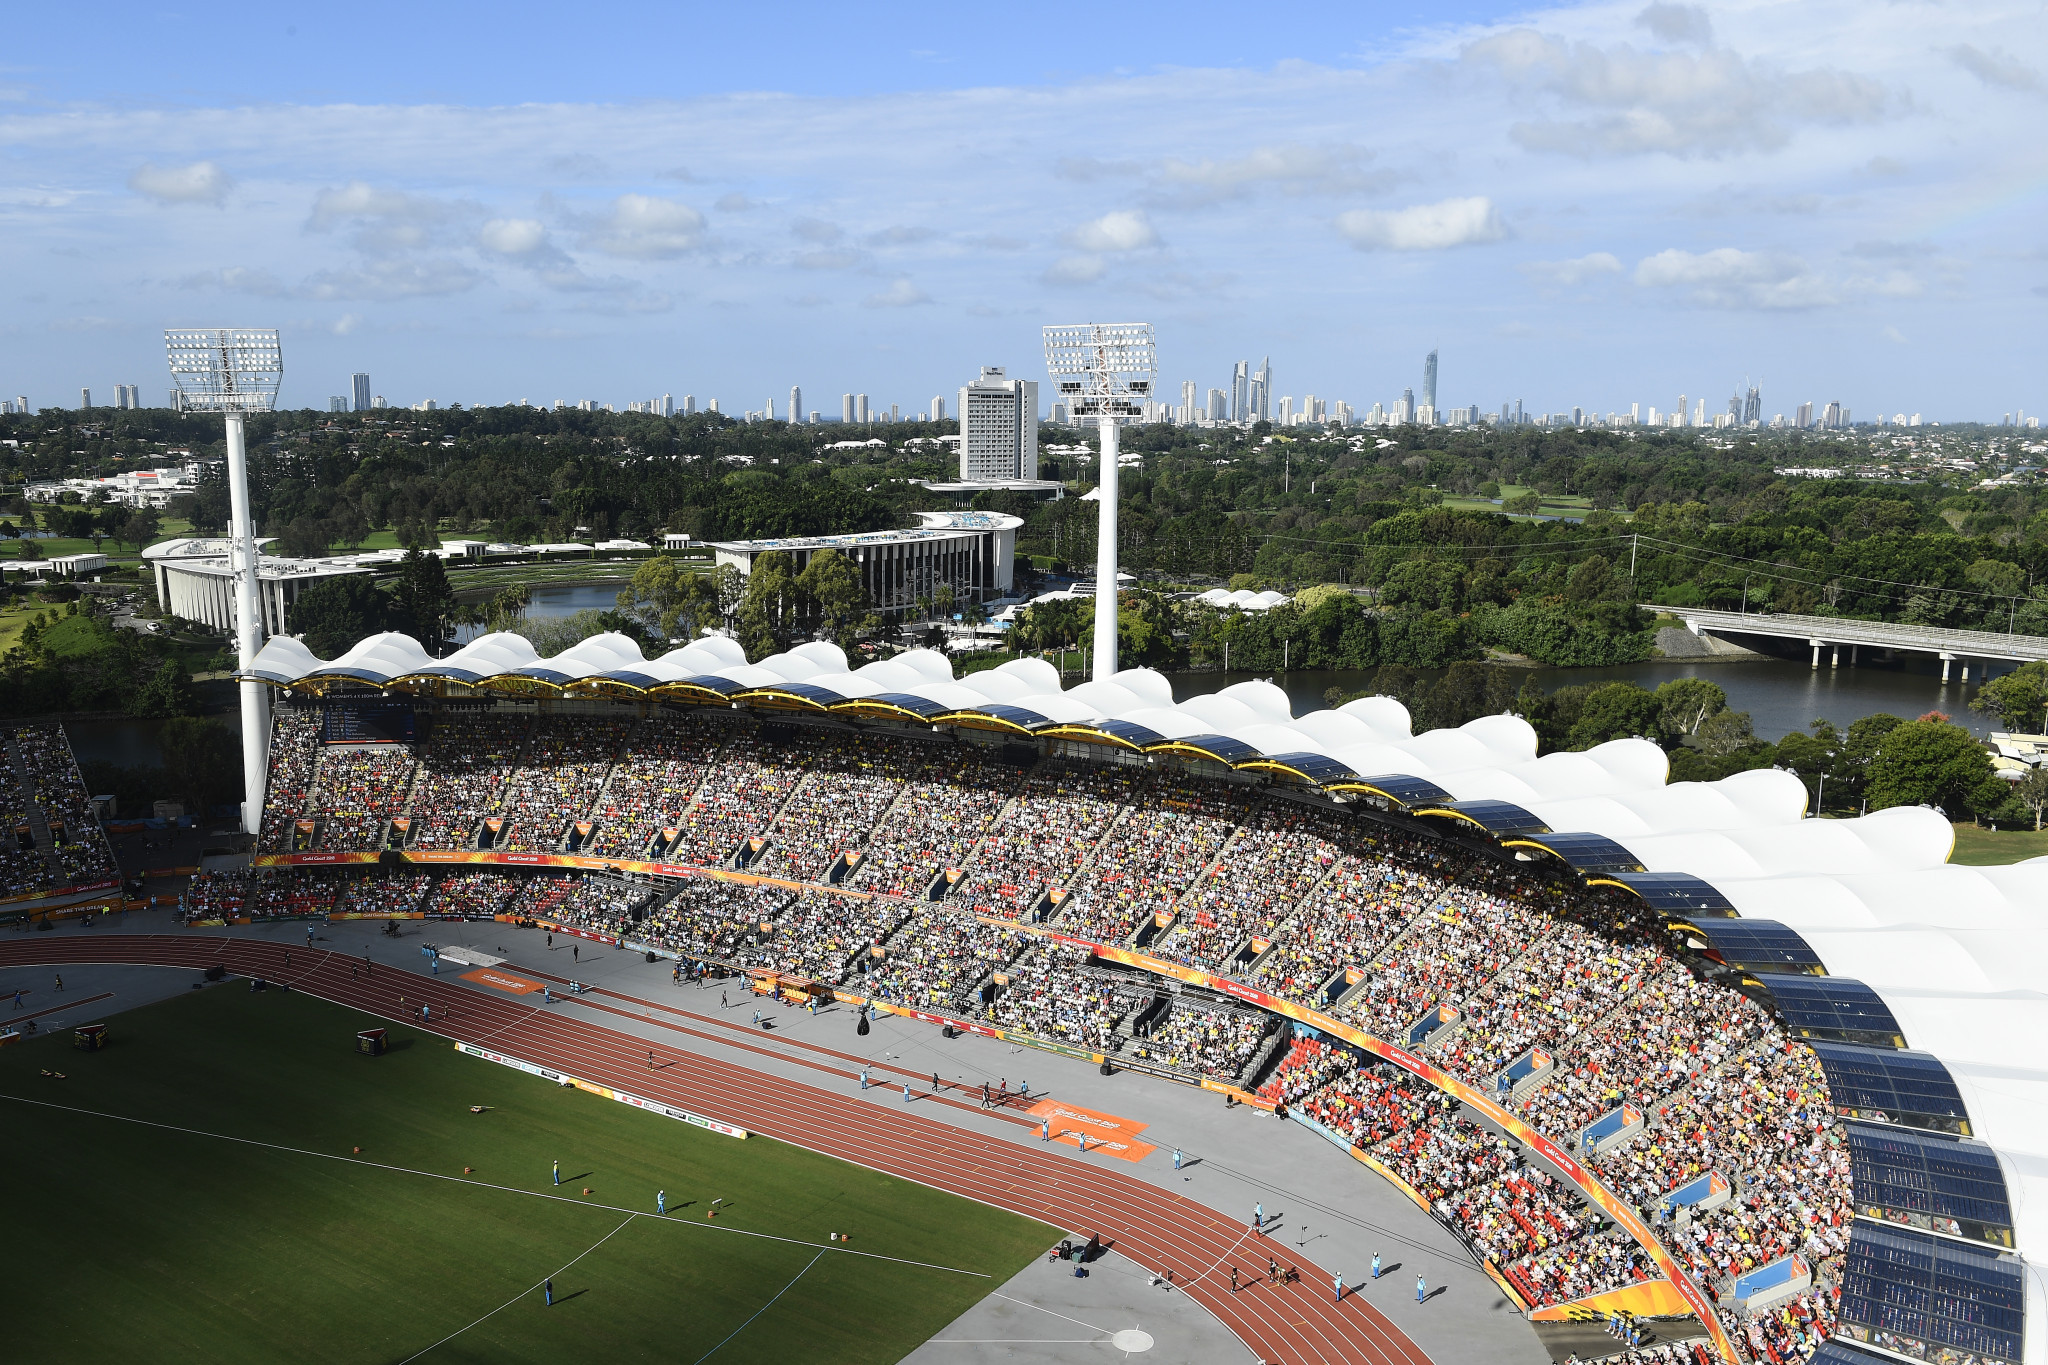 The Carrara Stadium, which hosted athletics, was a popular venue during the 2018 Commonwealth Games in the Gold Coast and has encouraged the city's Mayor Tom Tate to launch a bid for the IAAF World Championships ©Getty Images